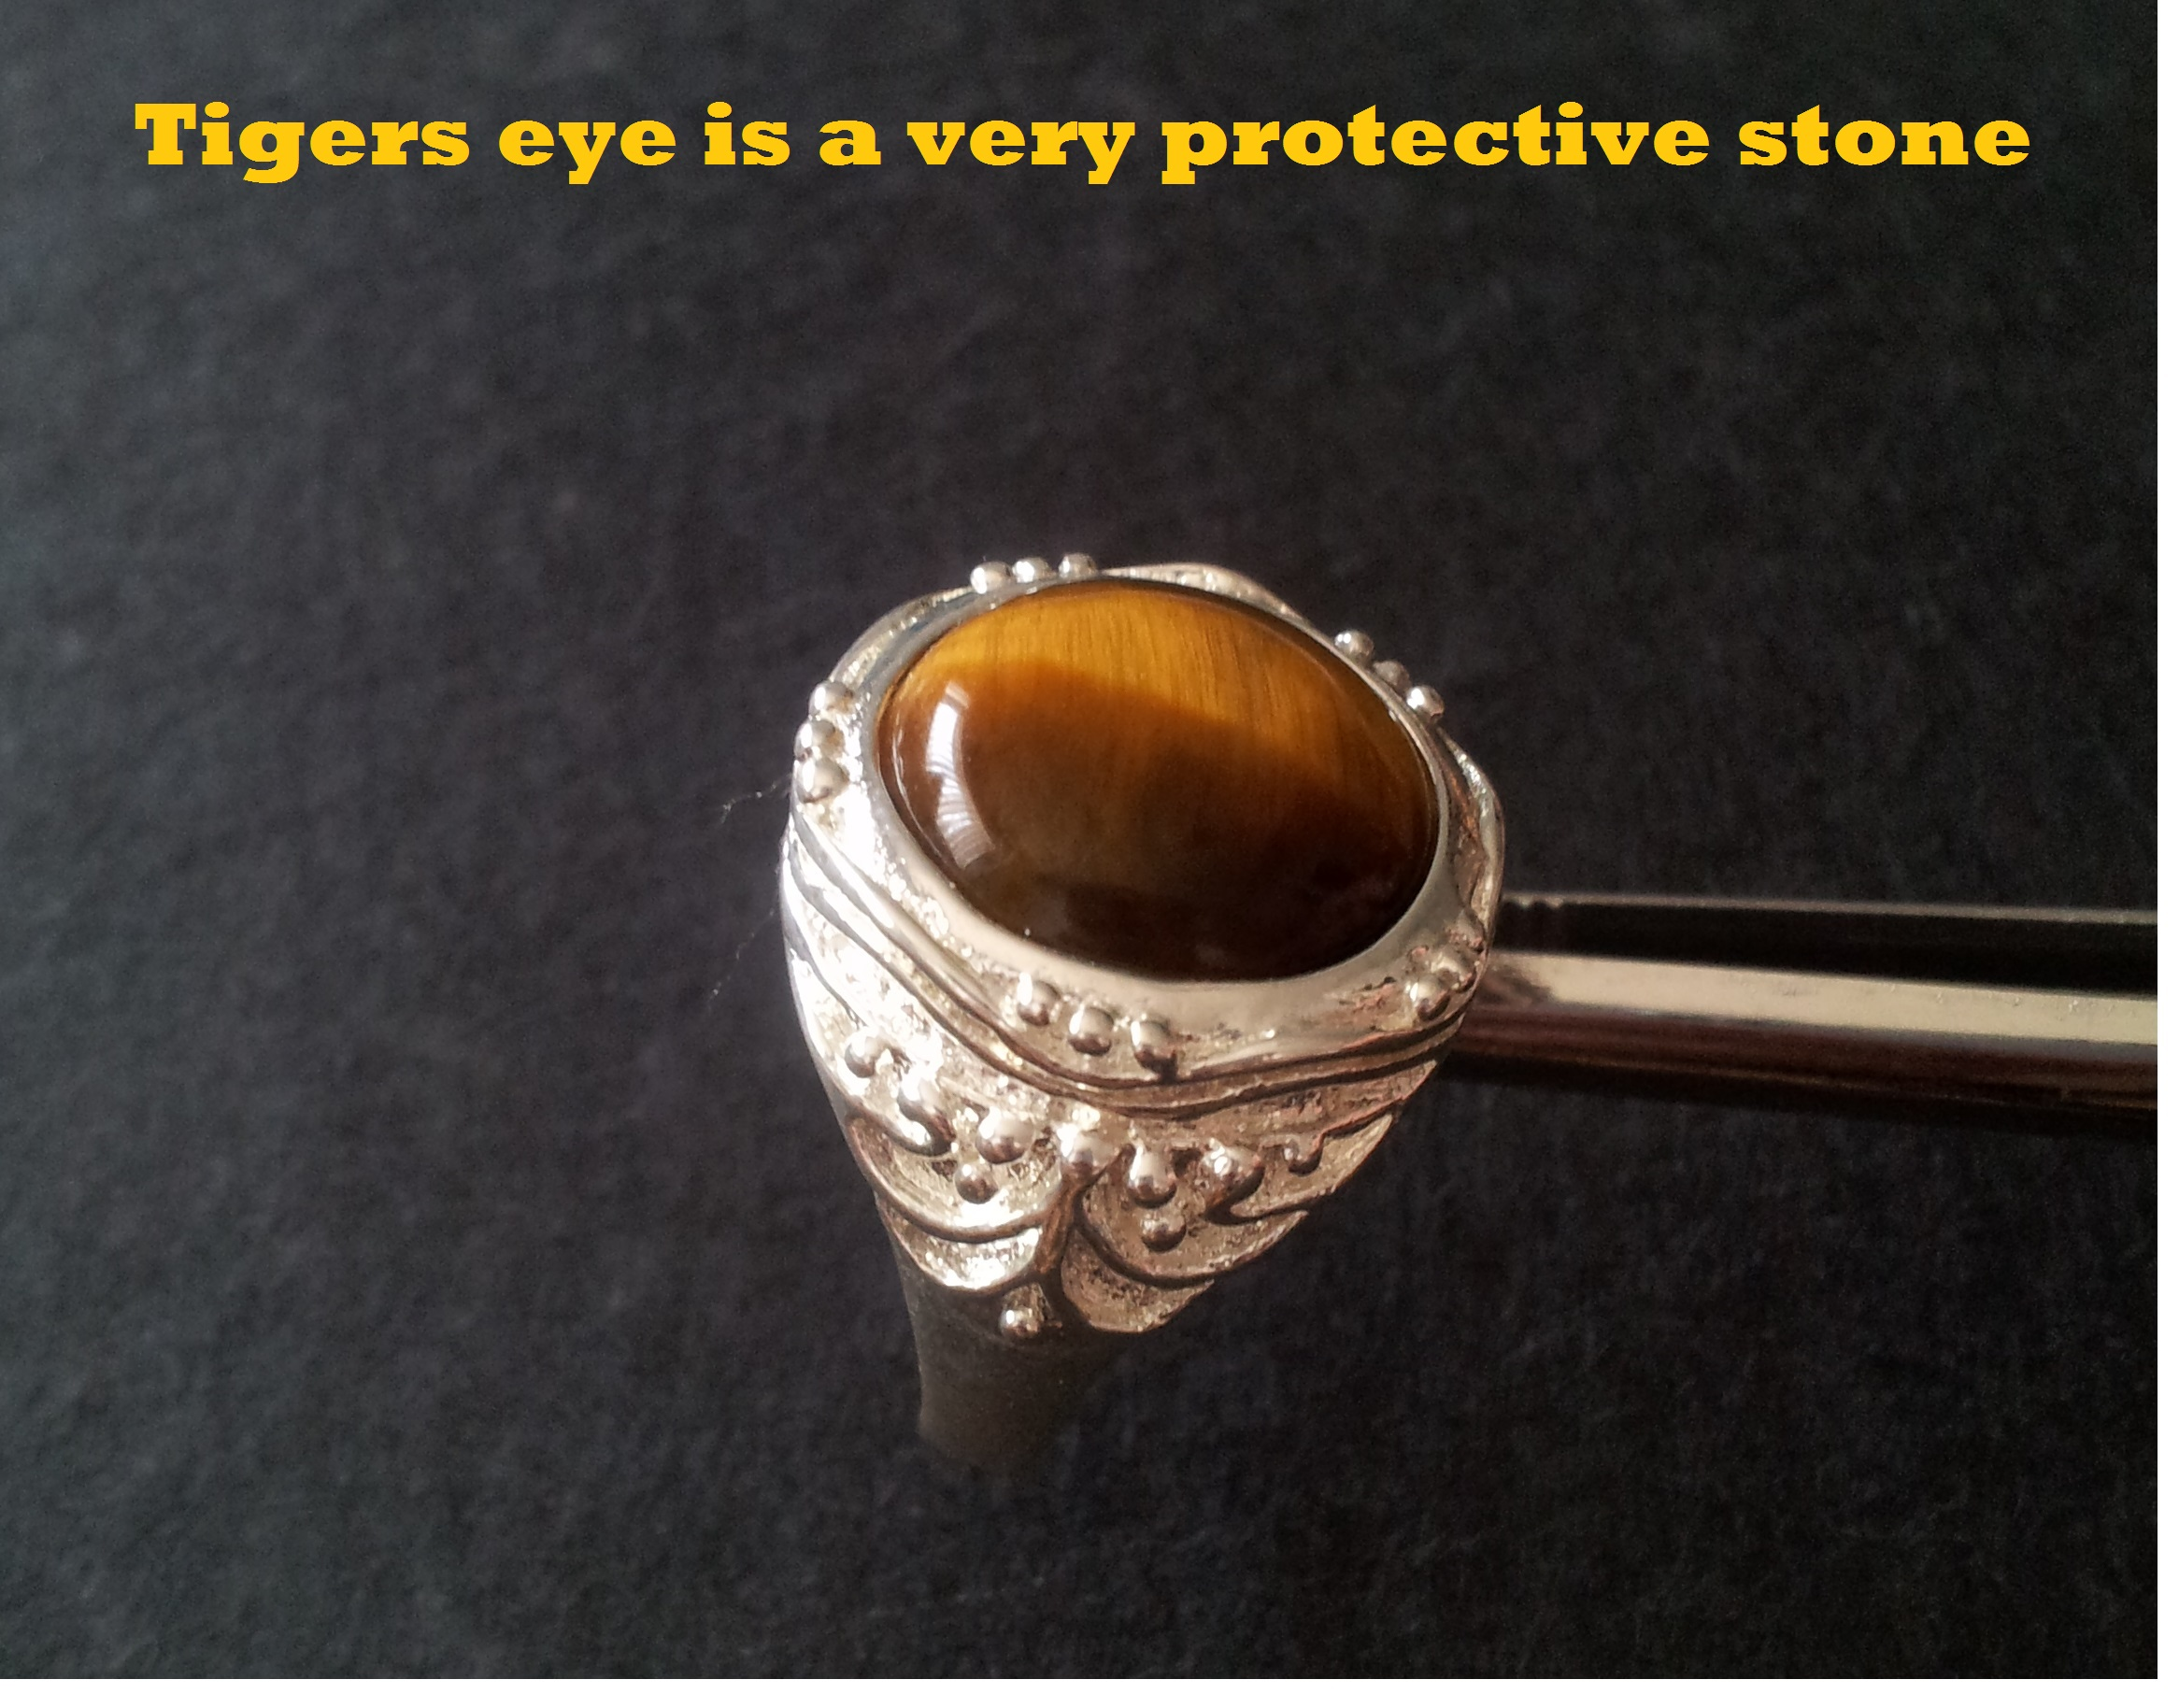 product presley eye elvis ring tiger tigers rings jewellery